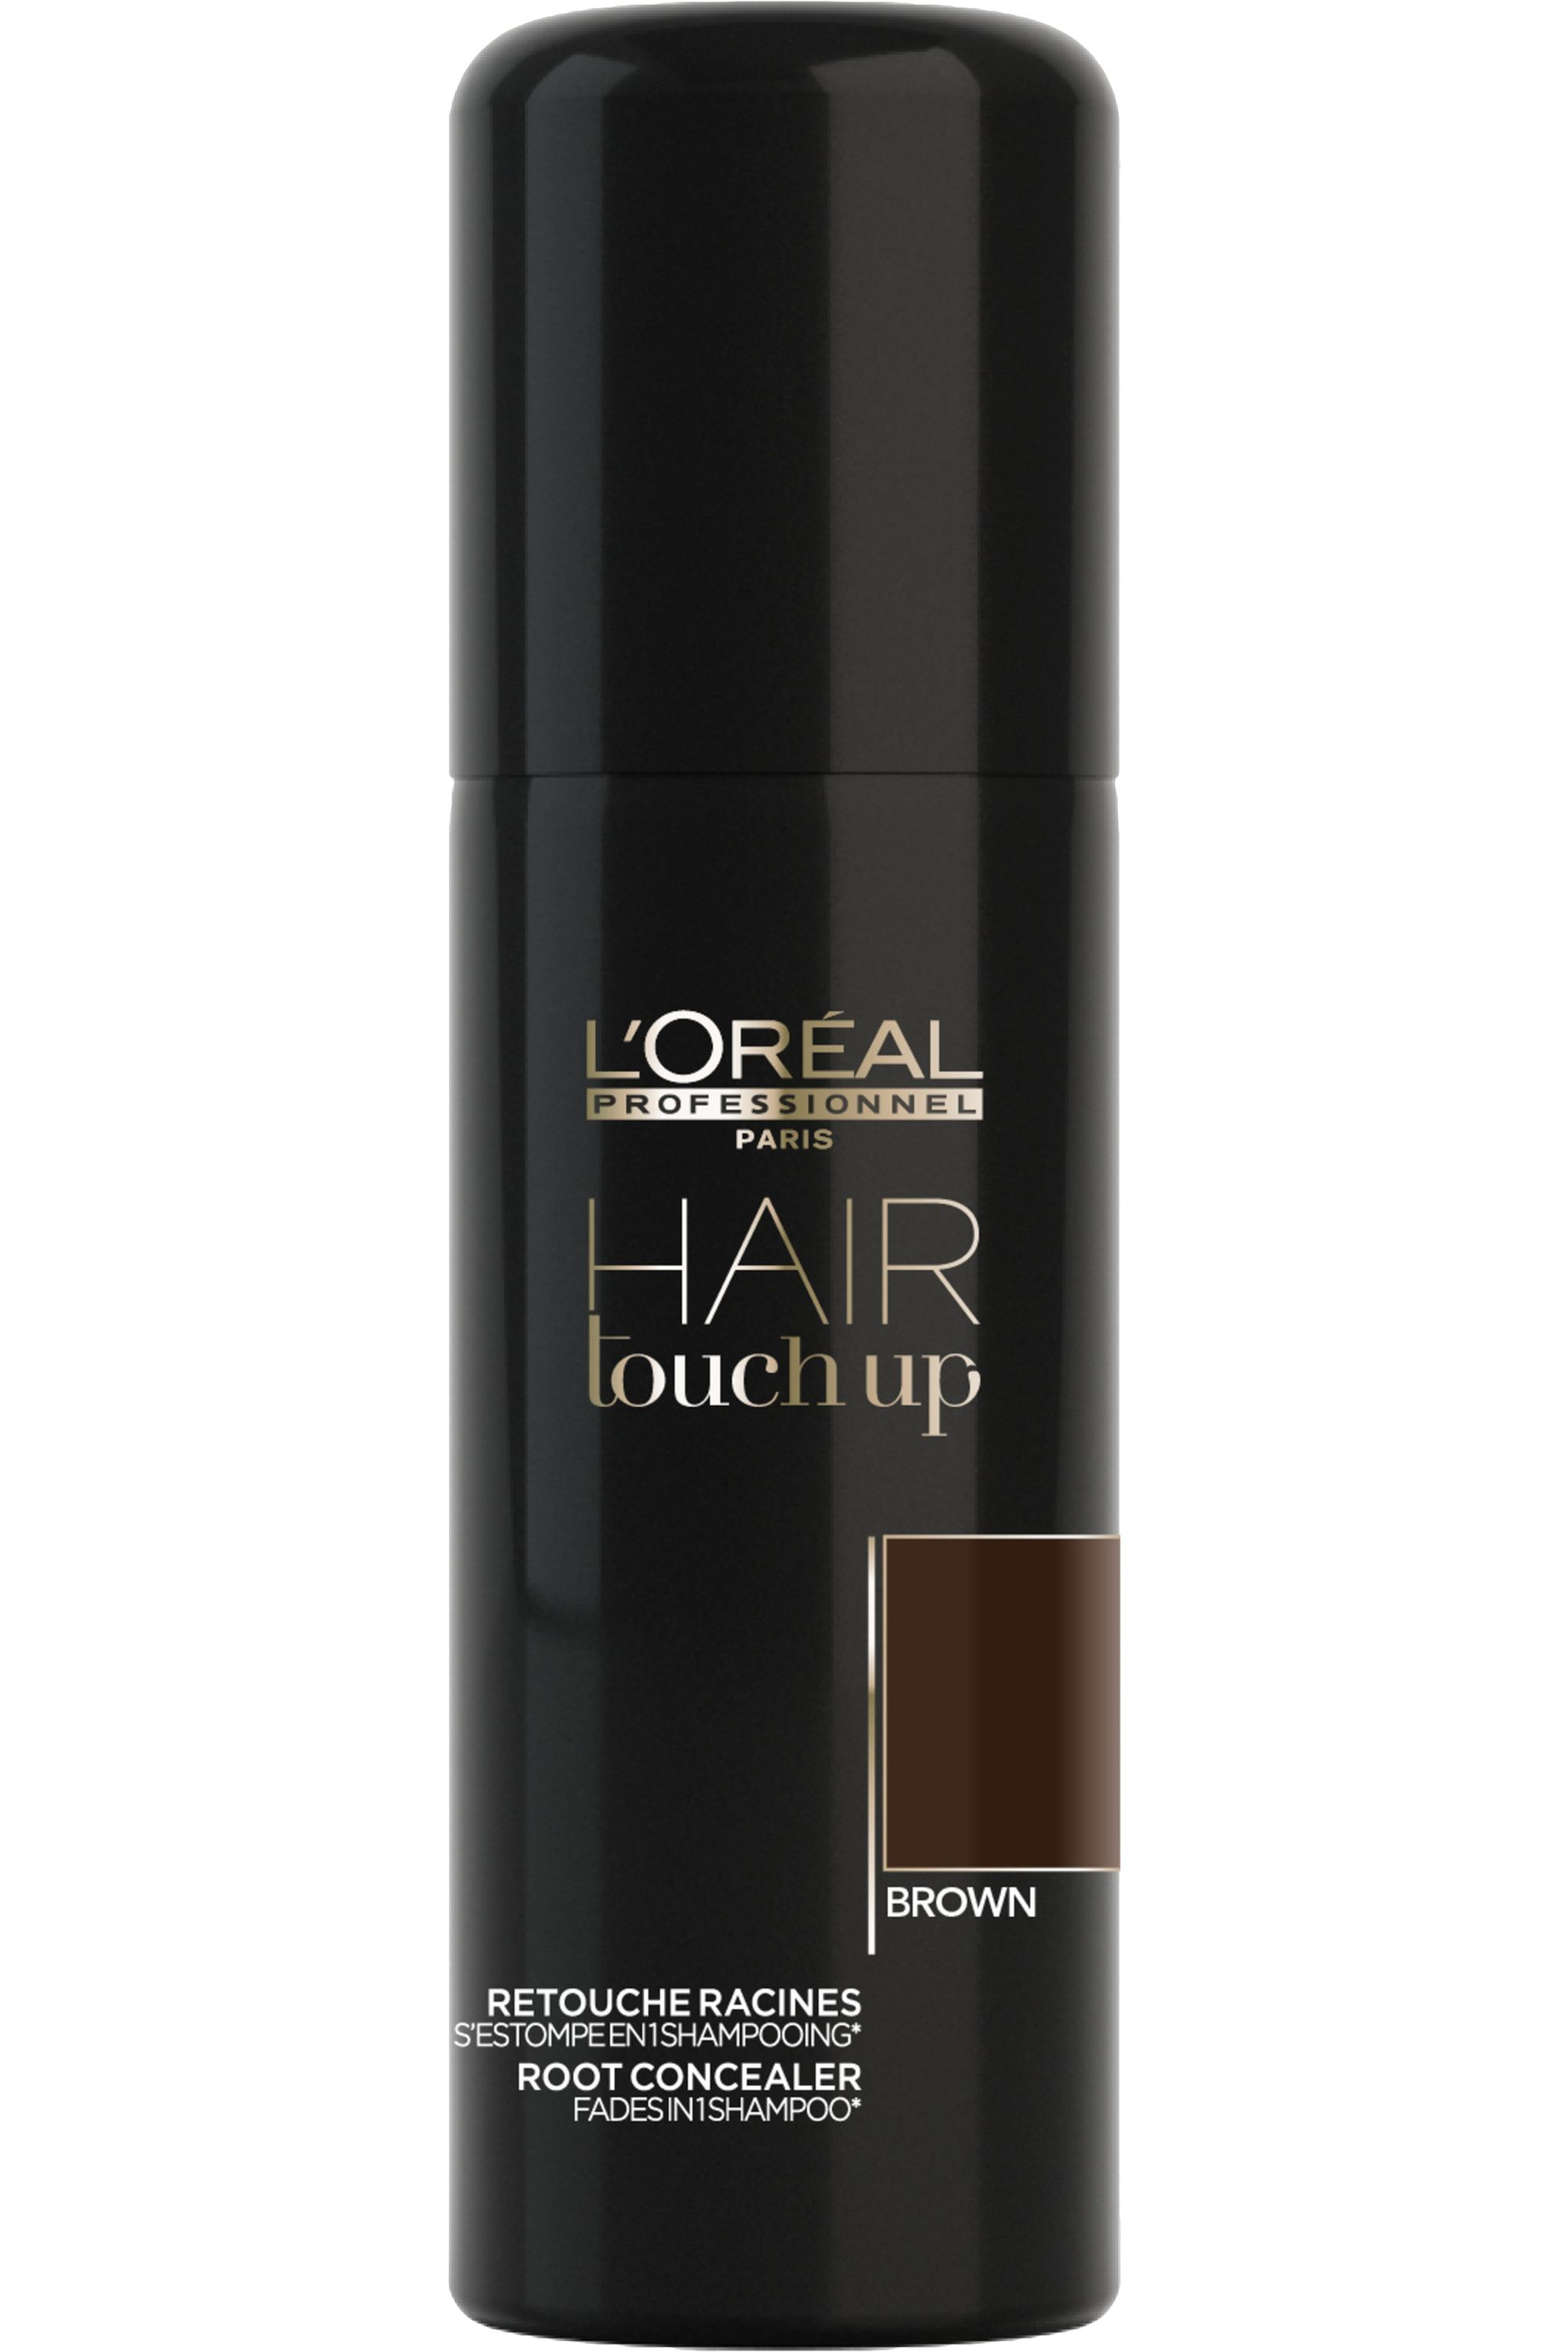 Blissim : L'Oréal Professionnel - Hair Touch Up - Chataîn